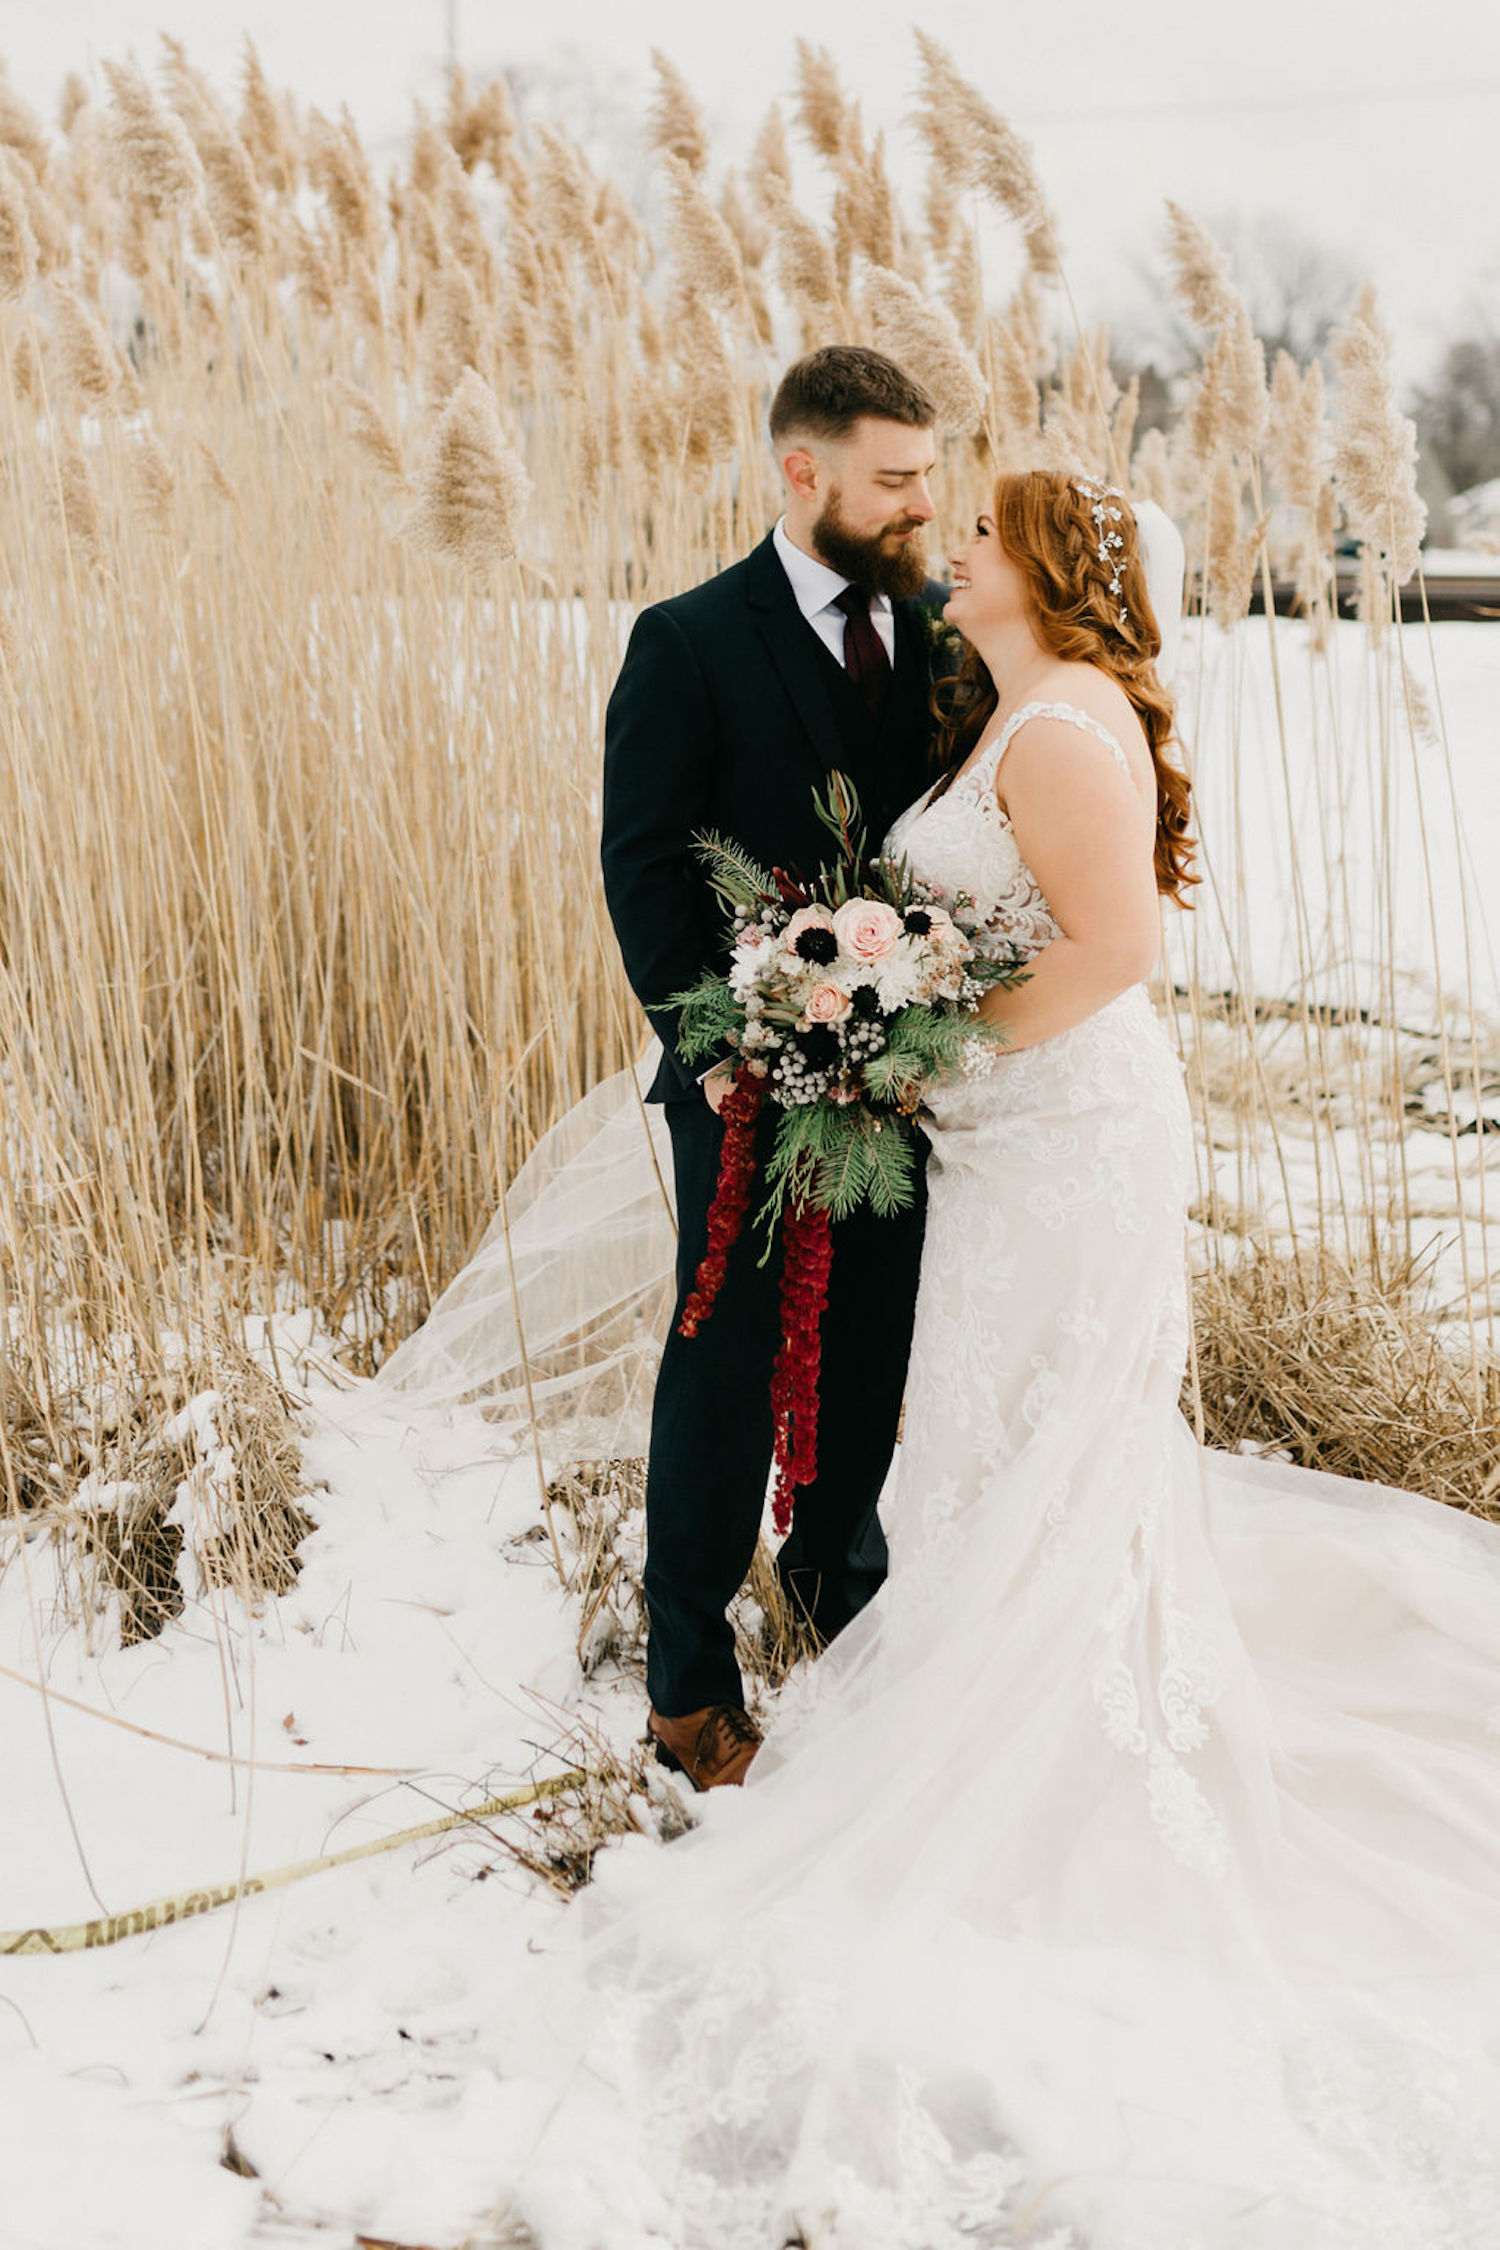 Bride and groom smiling in the snow